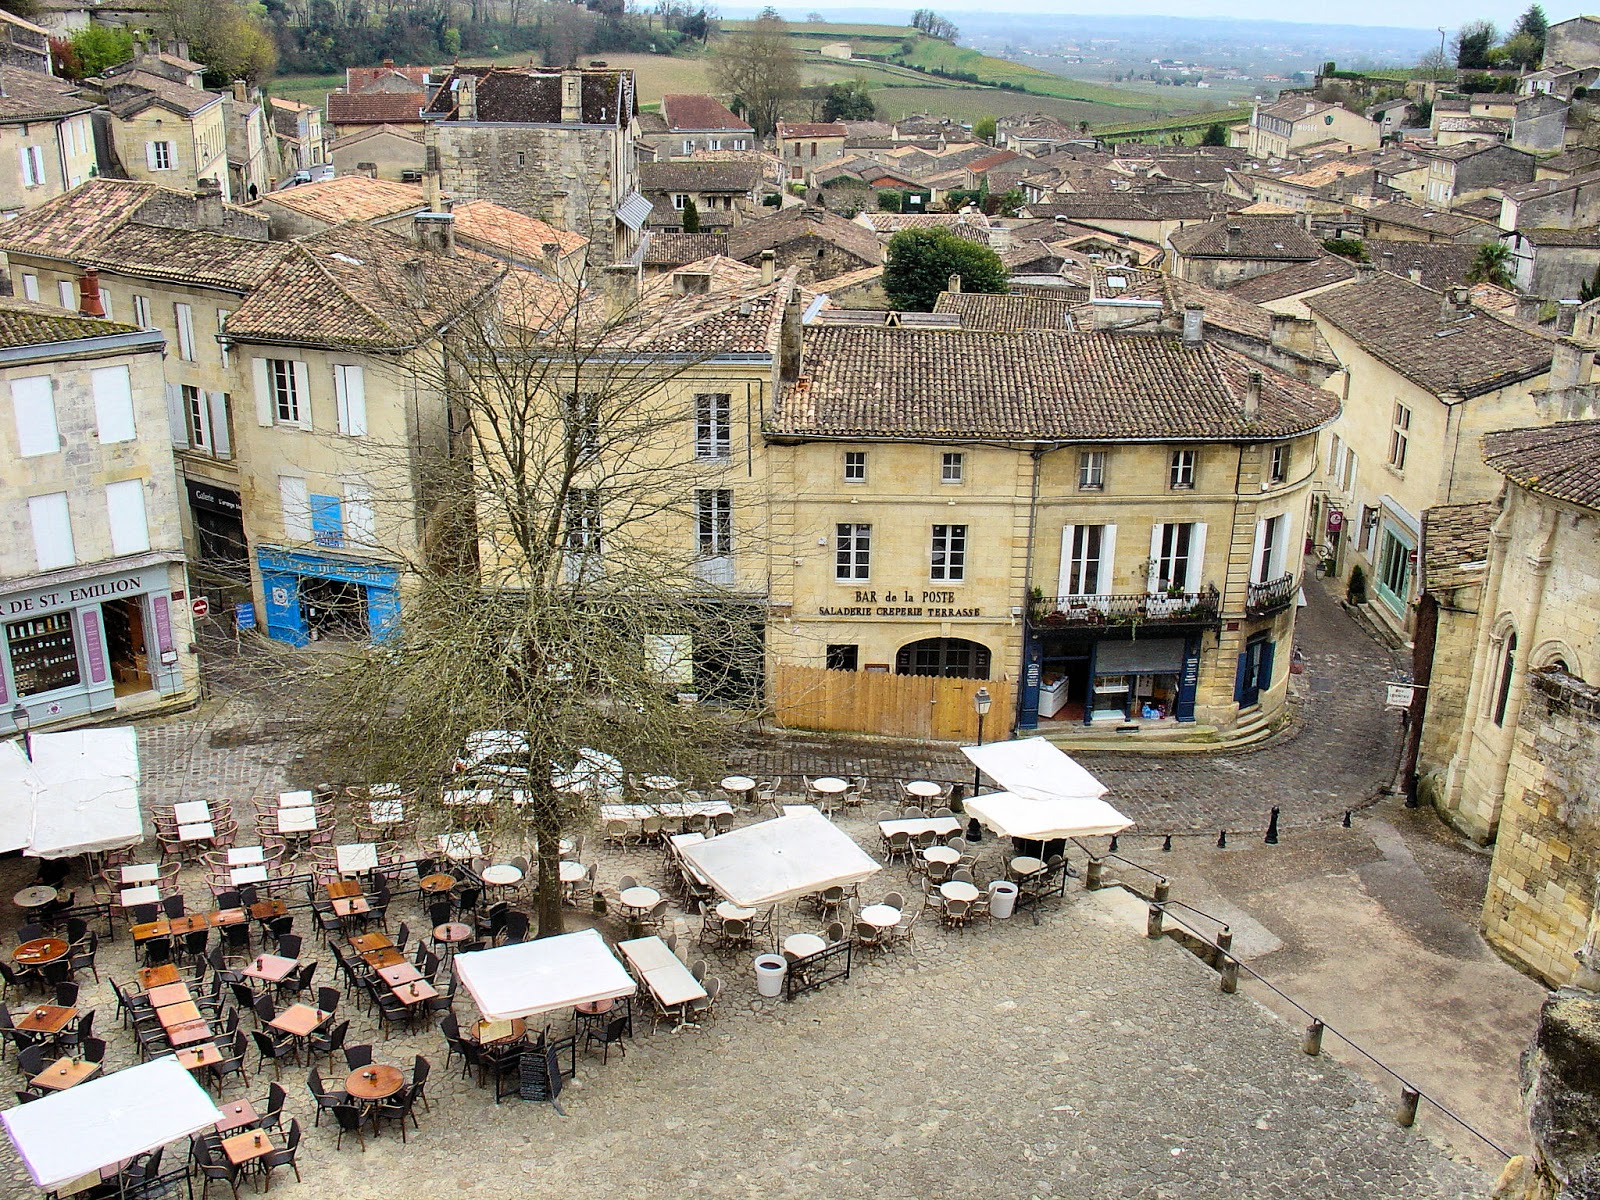 Looking down on the village of Saint-Émilion in the Bordeaux region of France. All photography is the property of EuroTravelogue™. Unauthorized use is prohibited.